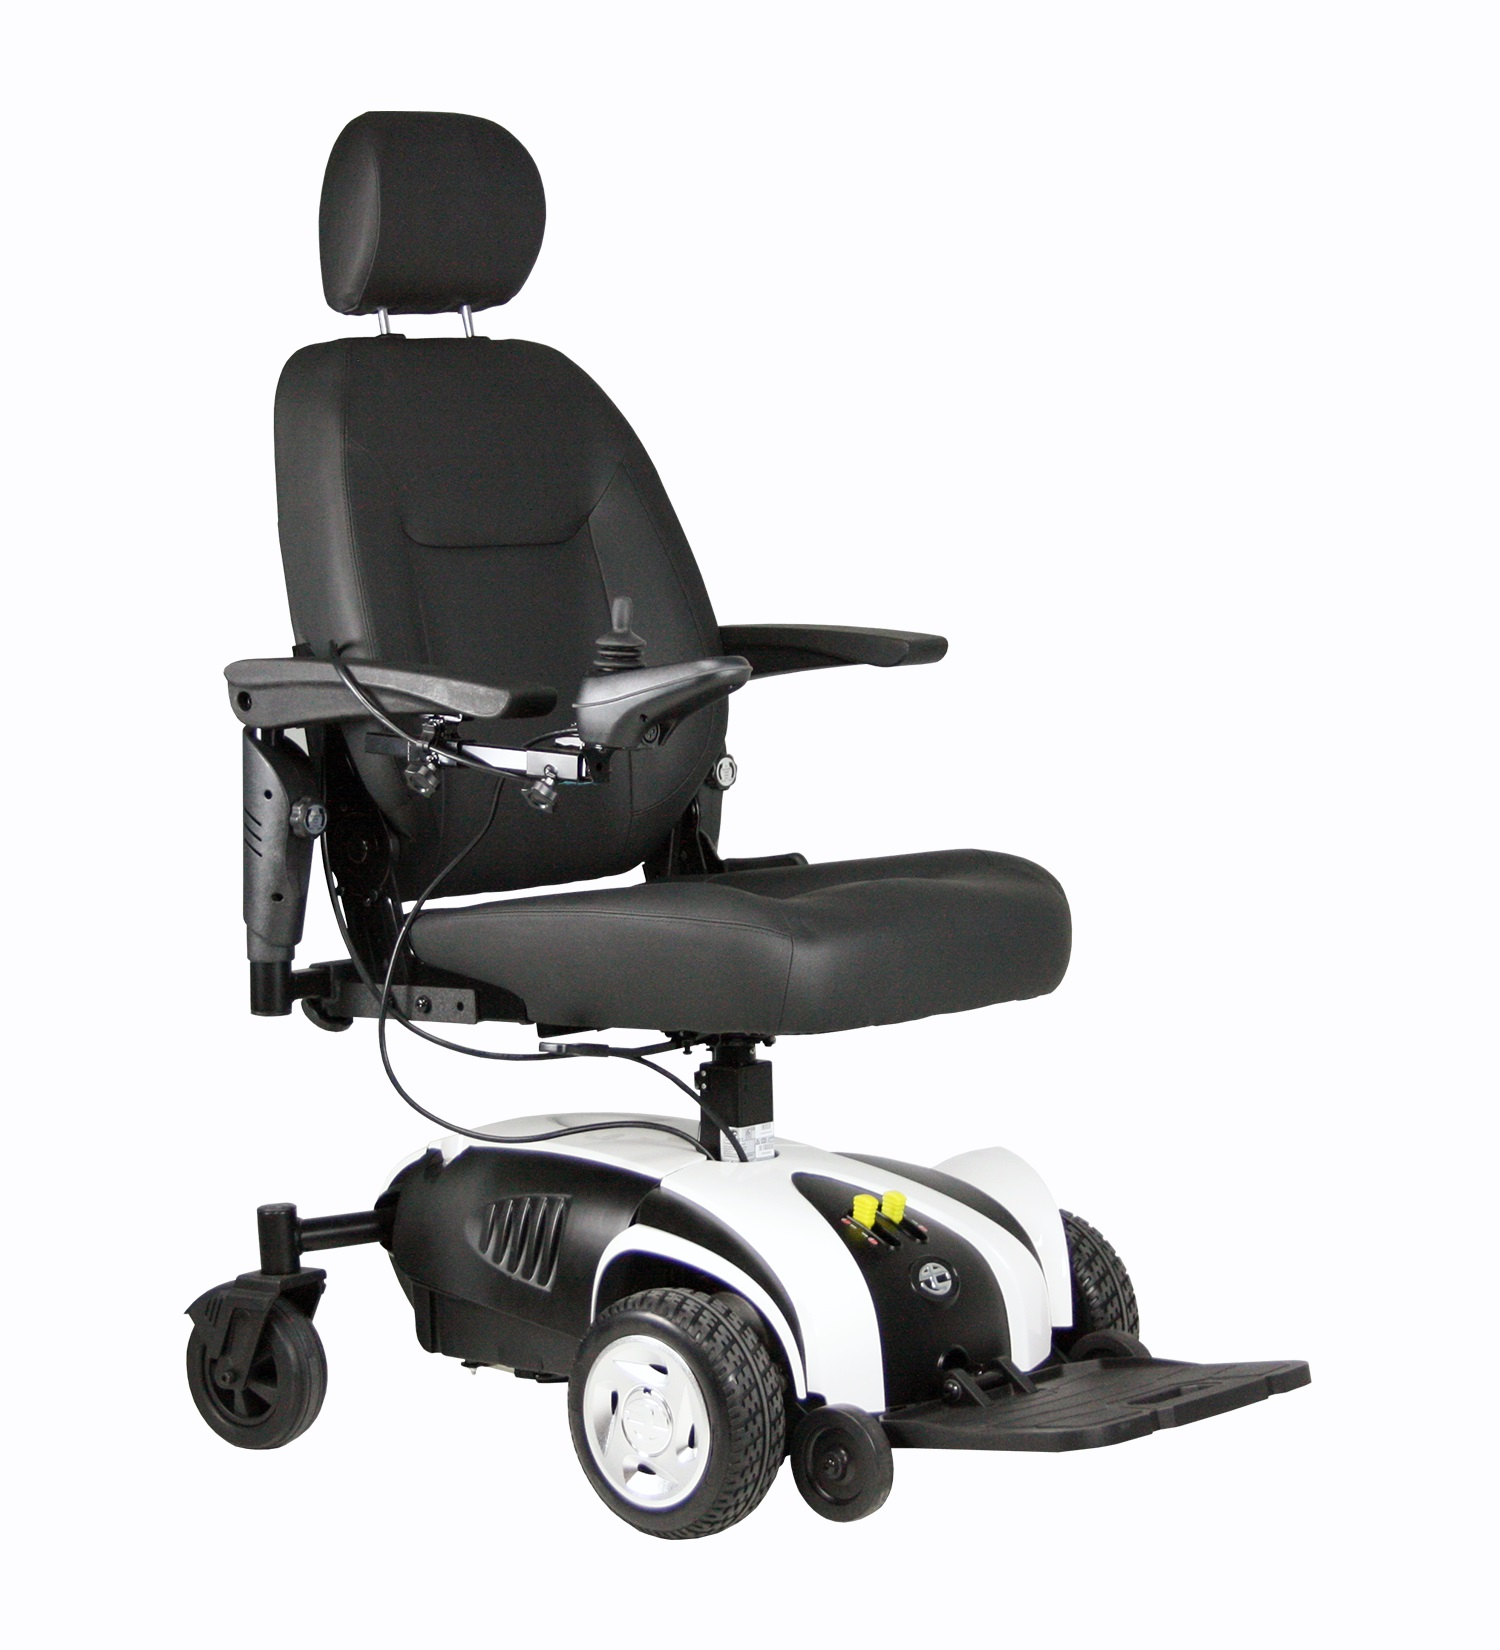 Travelux Venture Powerchair with Elevating Seat